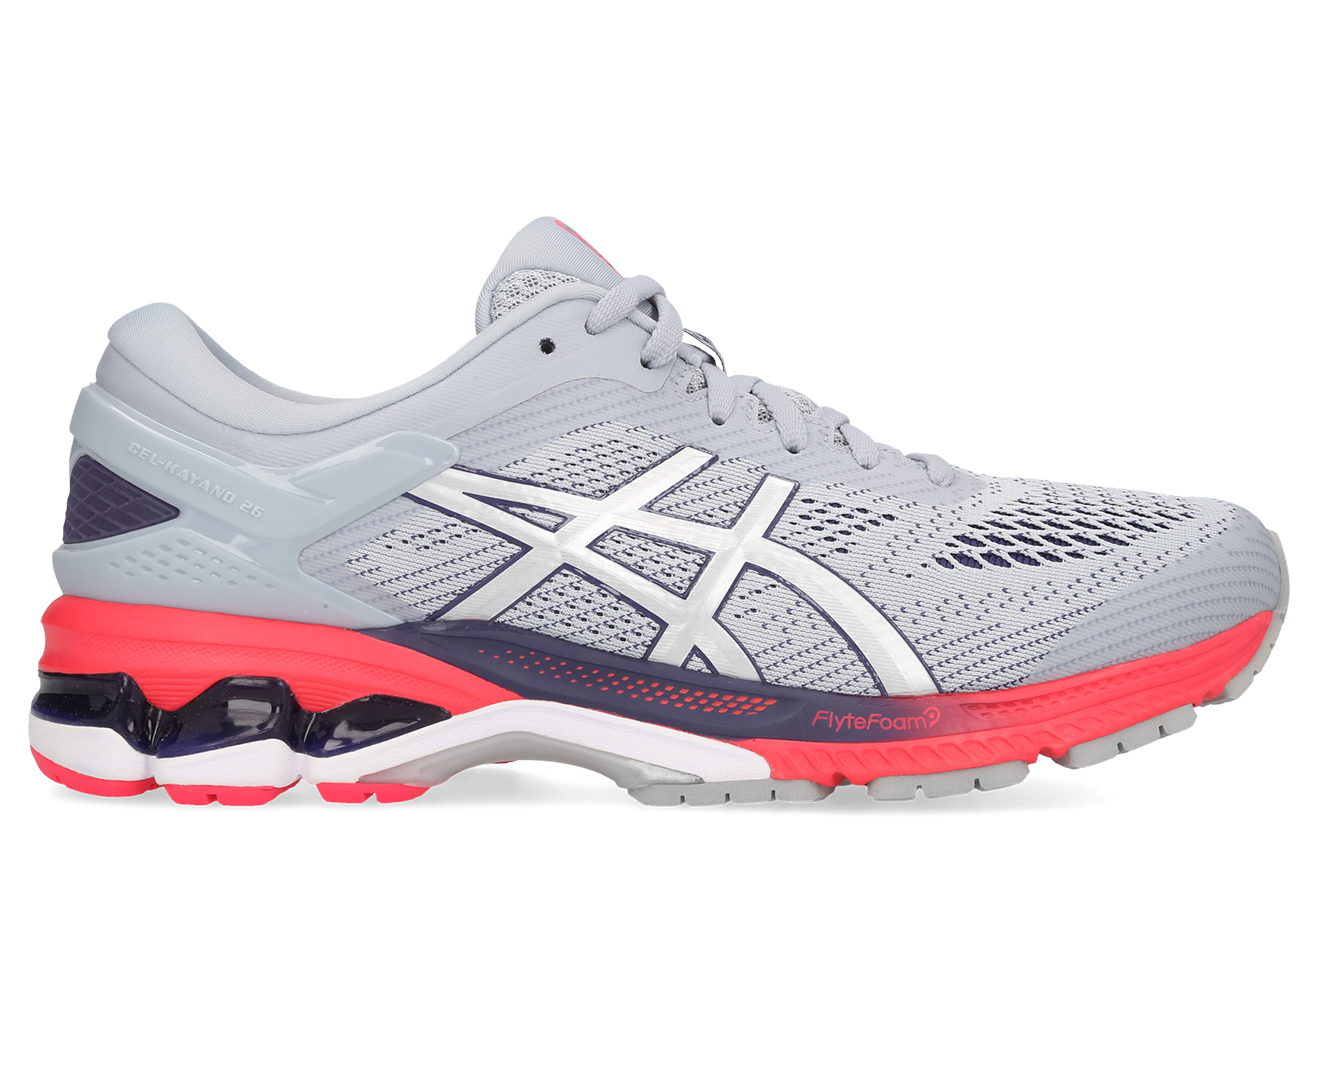 Details about ASICS Women's GEL Kayano 26 Running Shoes Piedmont GreySilver